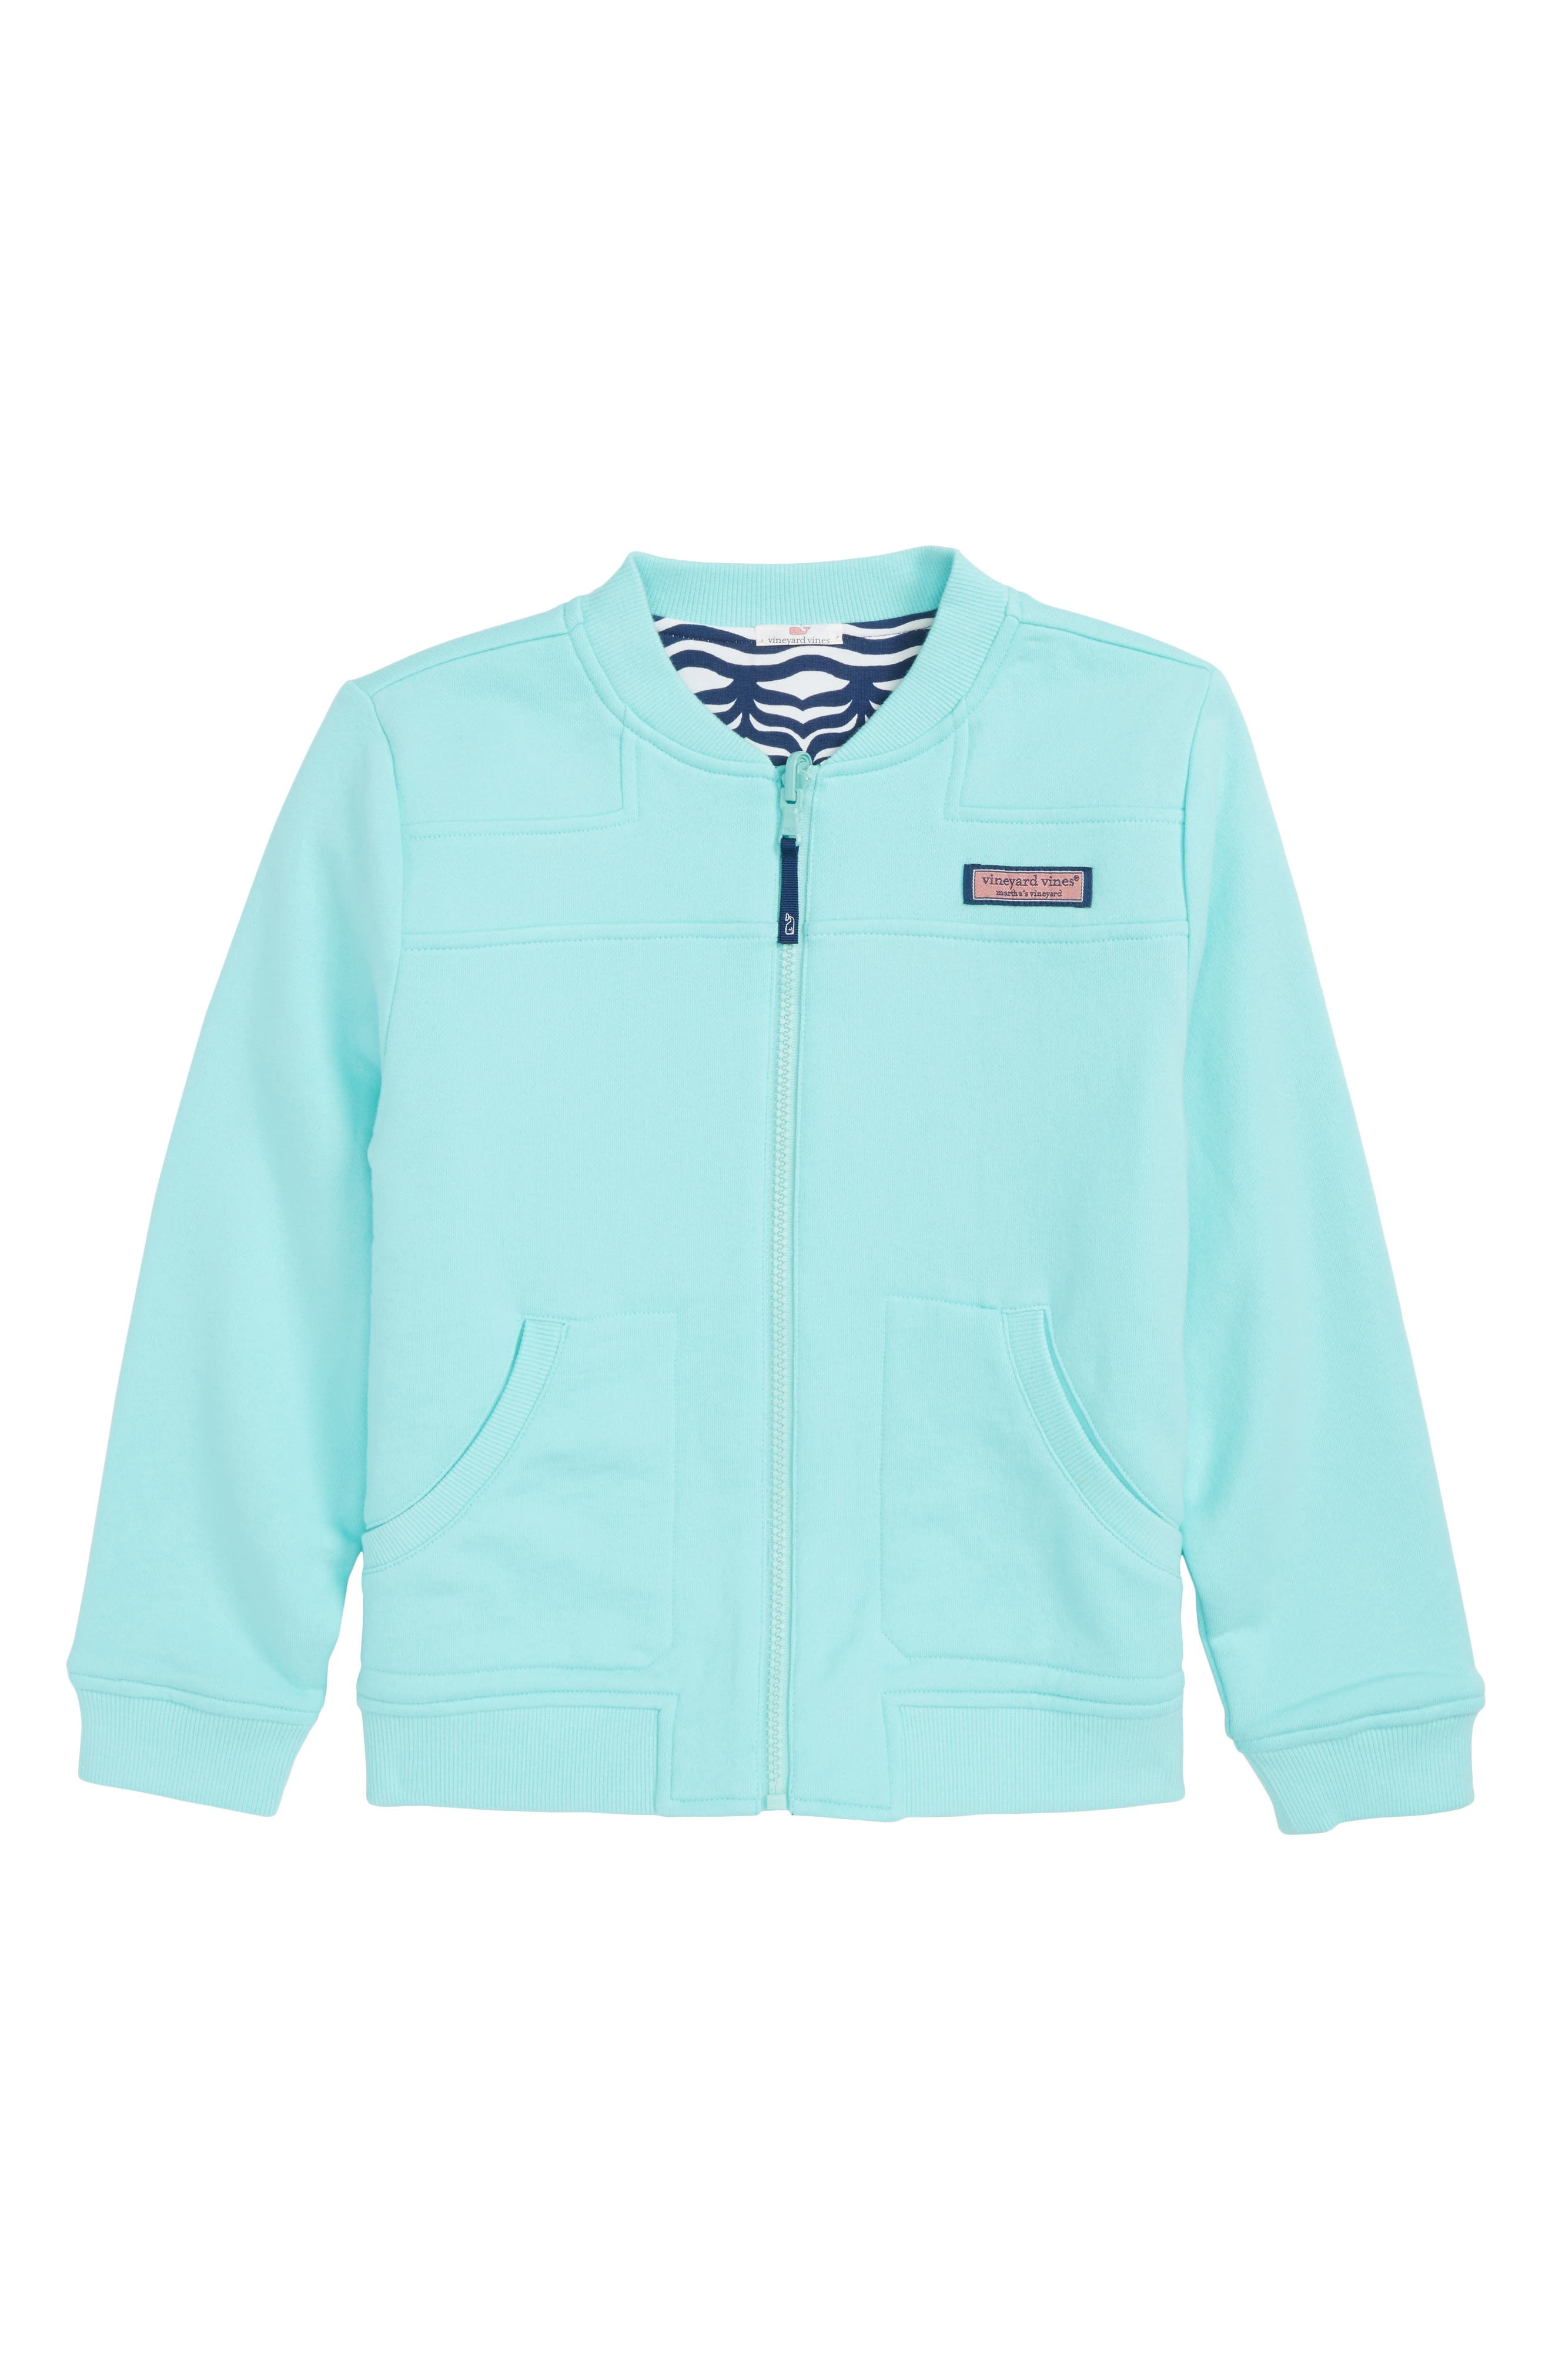 Reversible Full Zip Bomber Jacket,                             Main thumbnail 1, color,                             Caicos